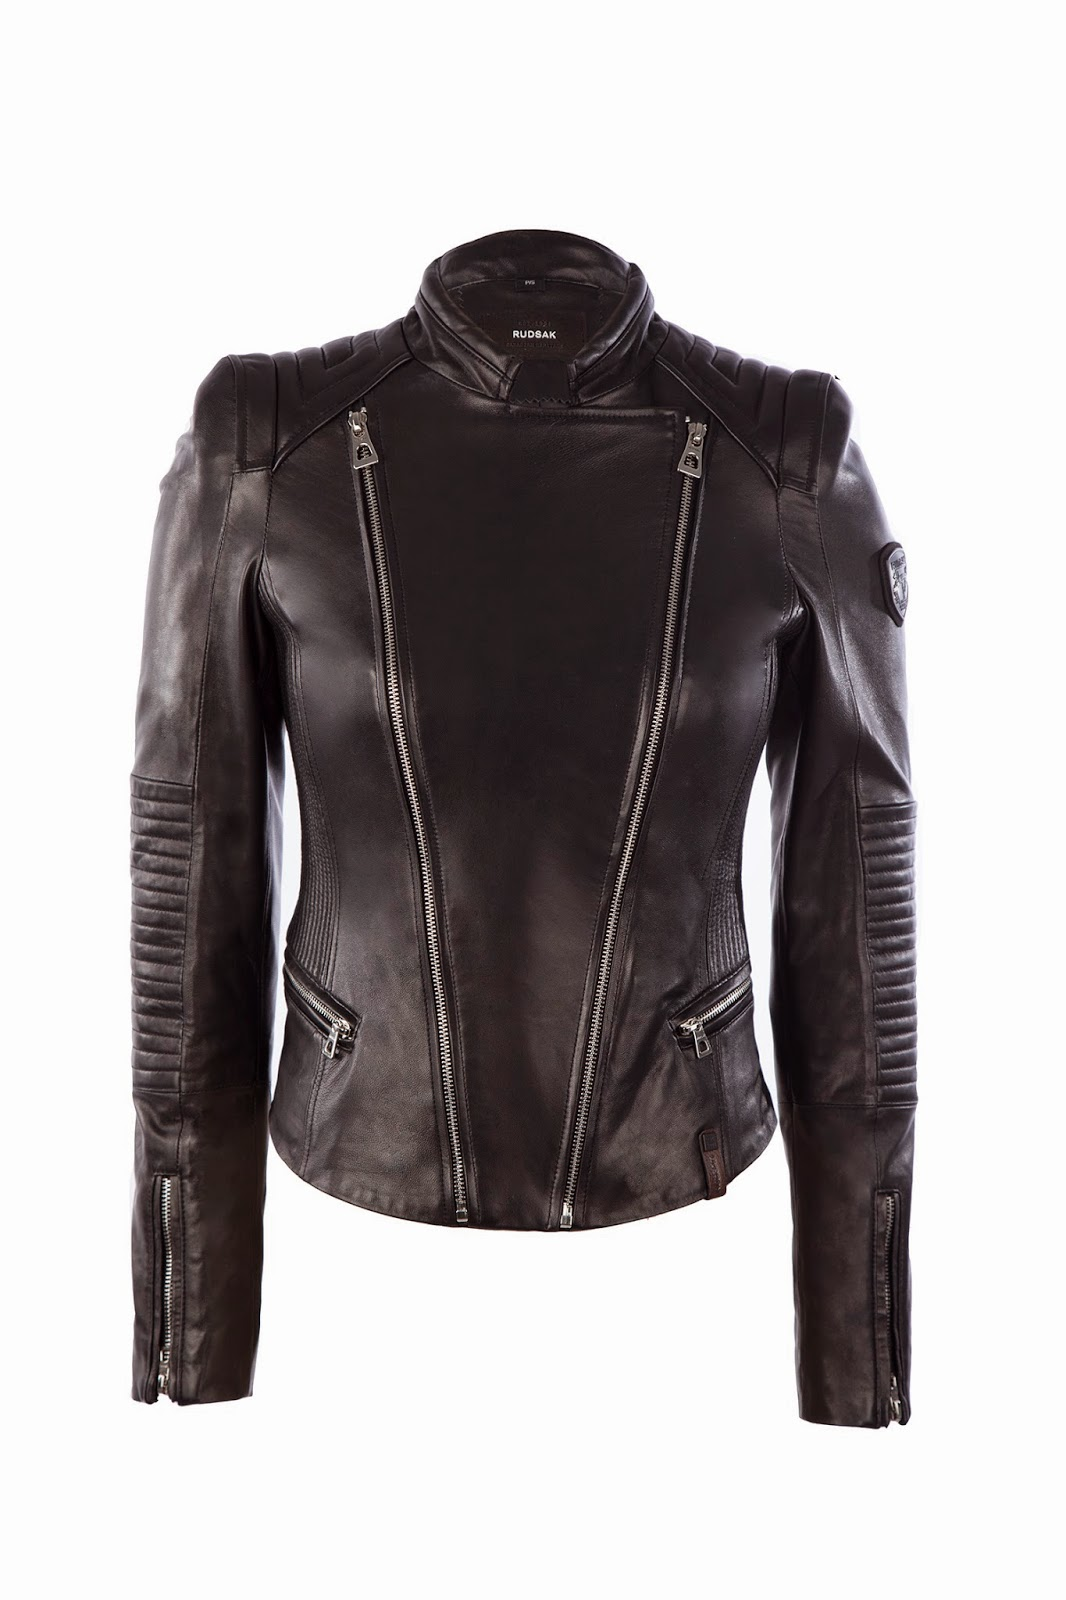 RUDSAK leather jacket